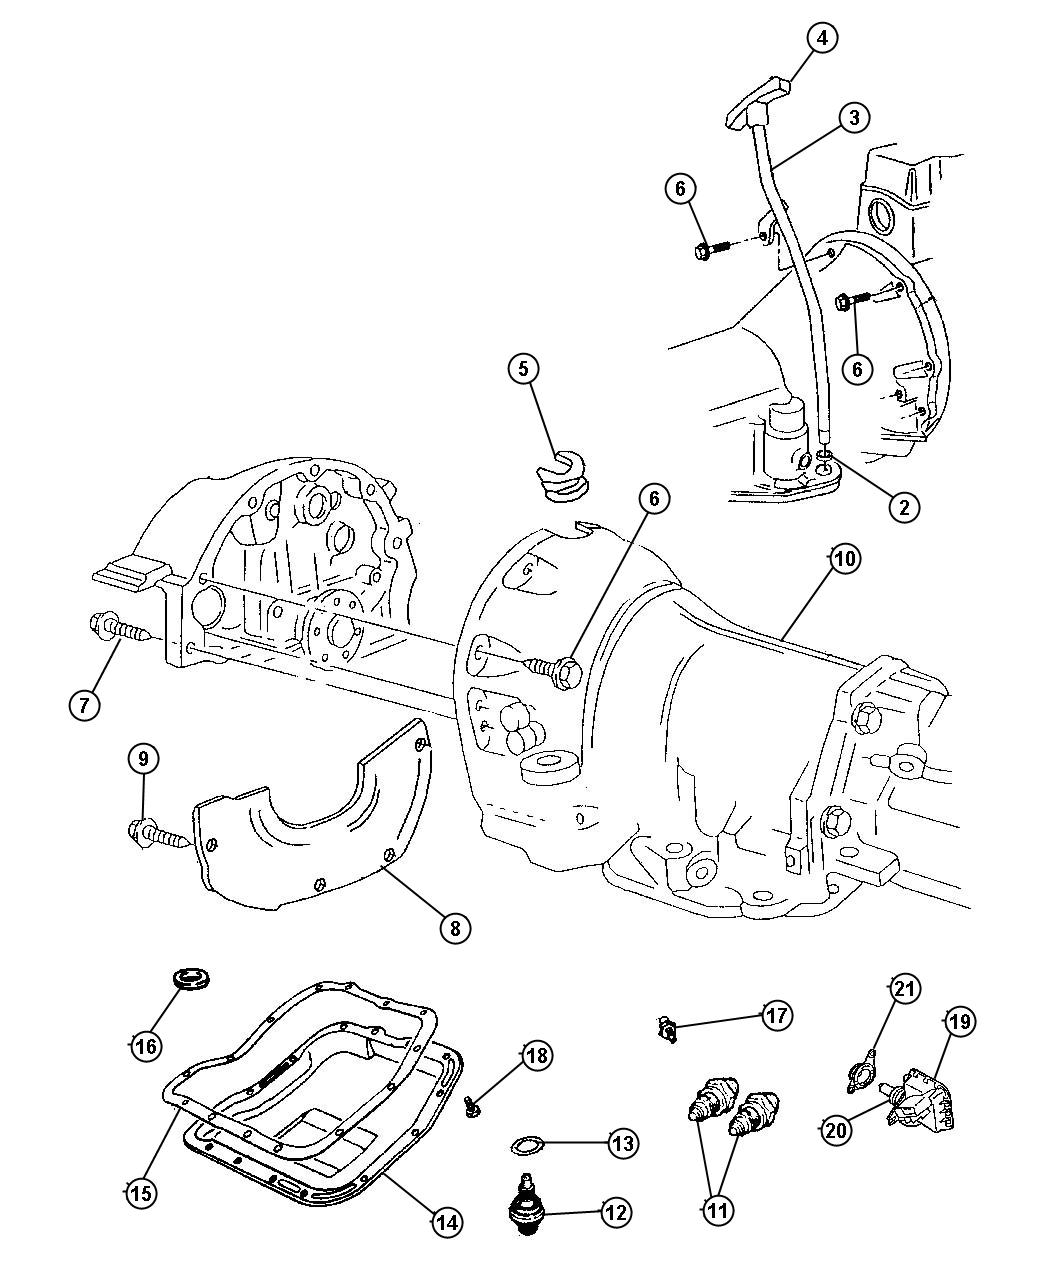 jeep th400 wiring diagram 4l60 wiring diagram wiring